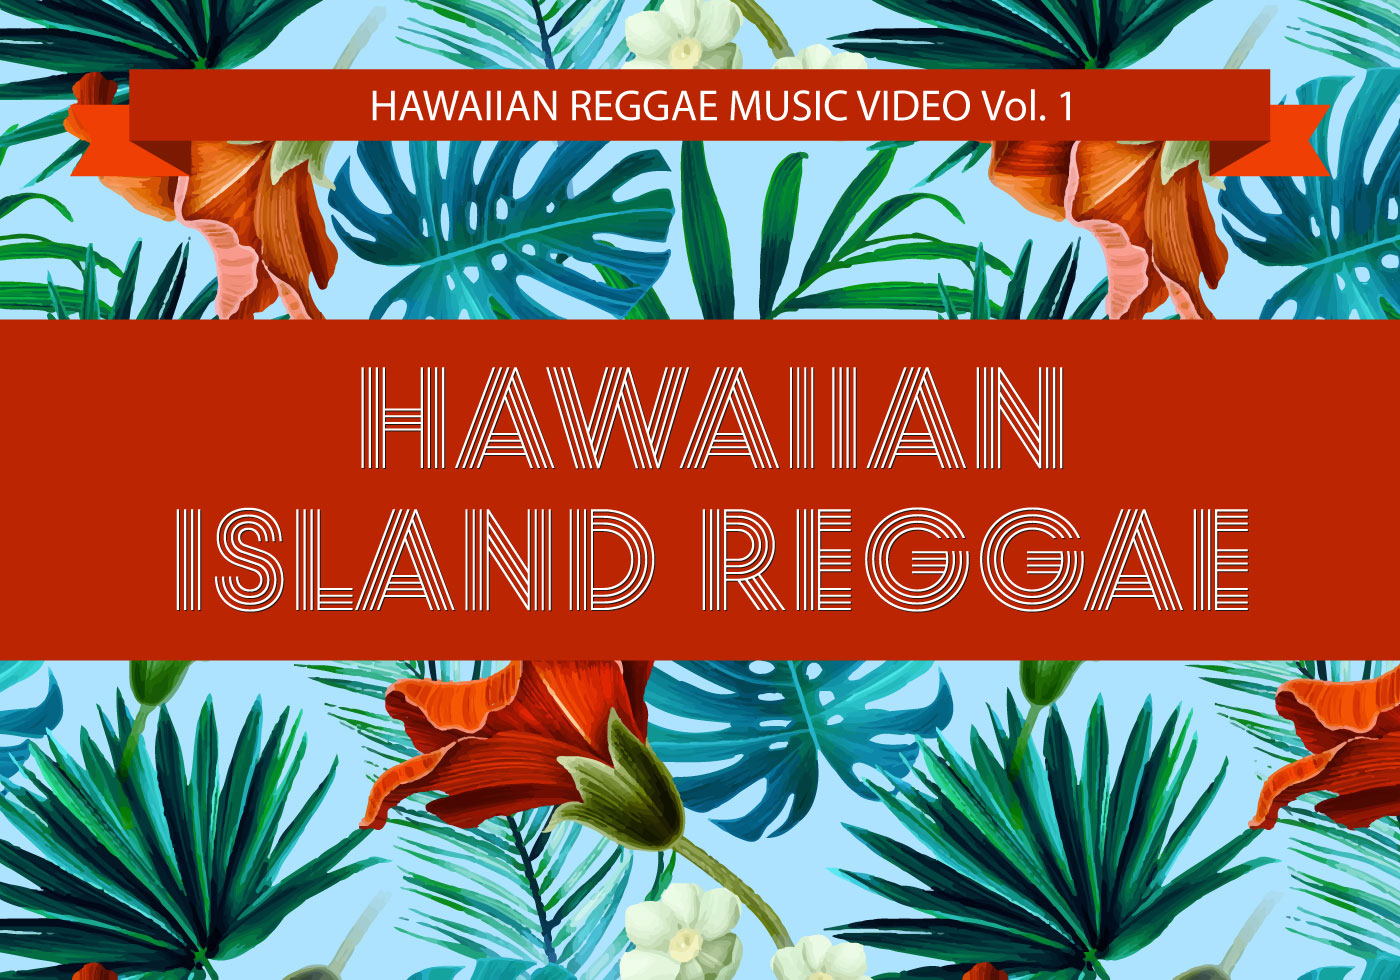 HawaiianIslandReggae